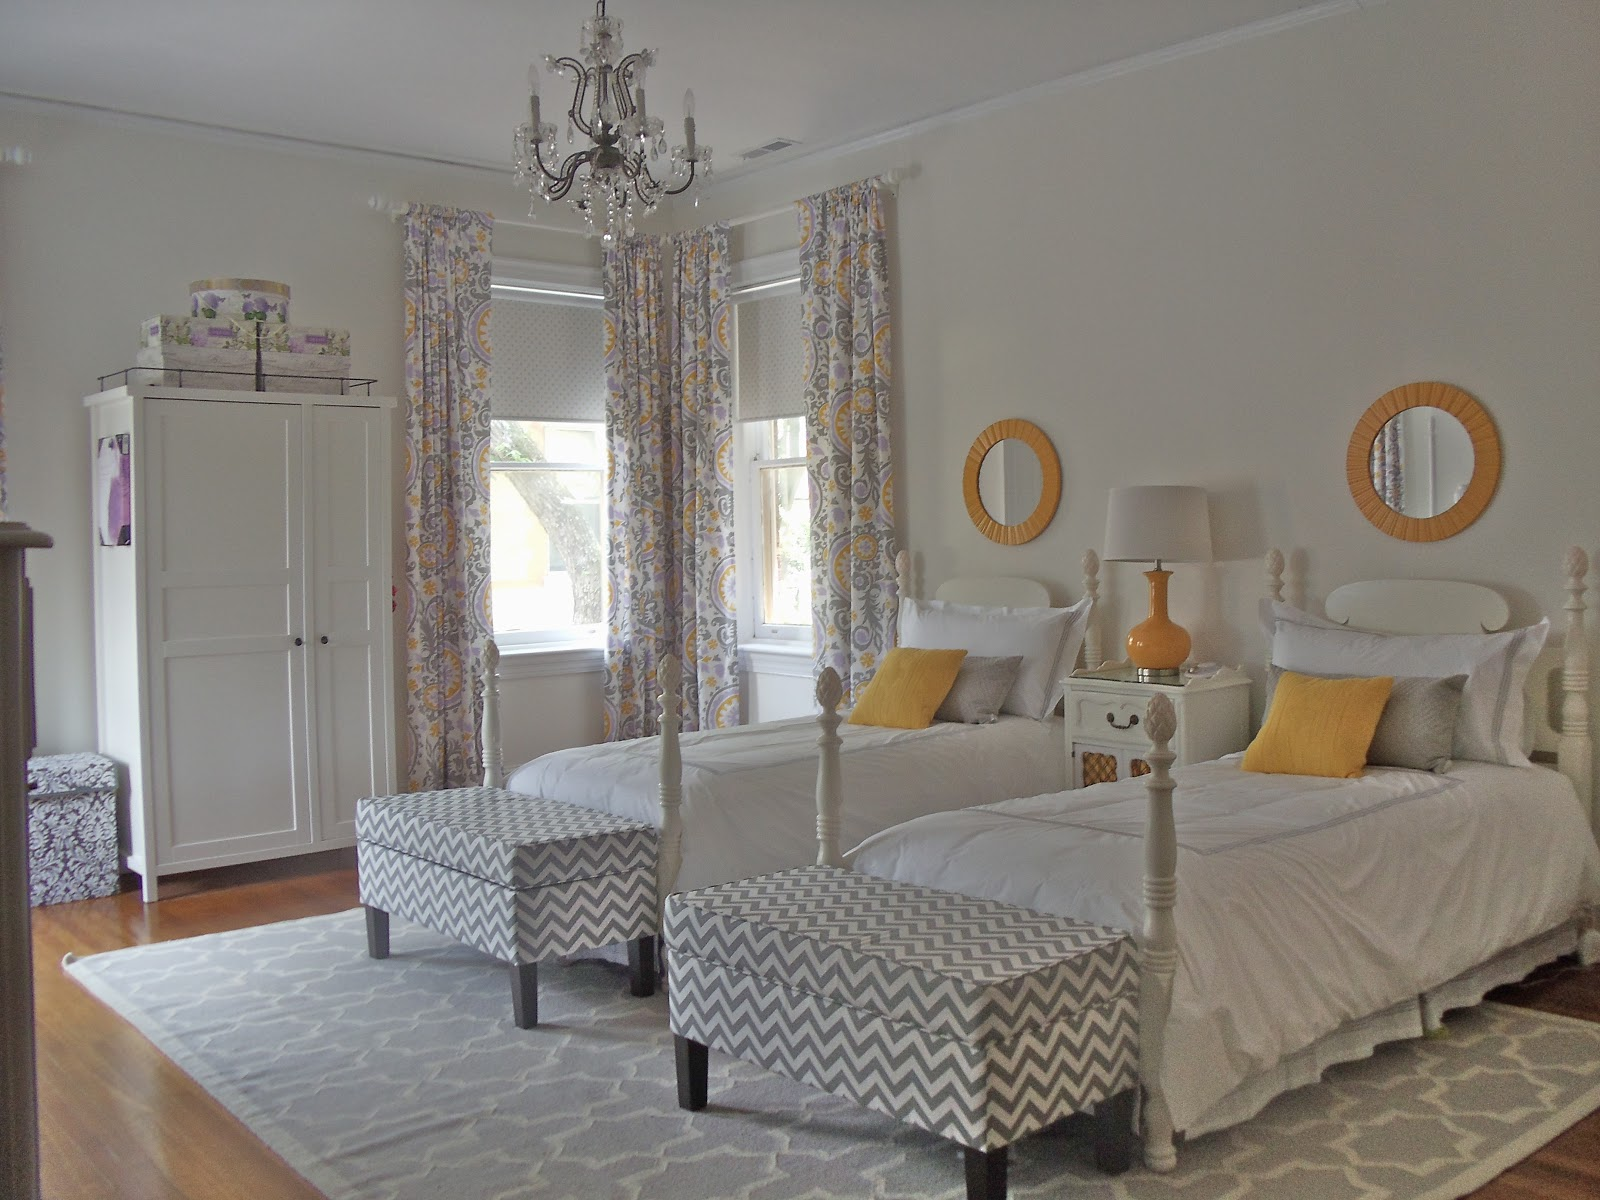 Worthwhile Domicile Shared Big Girl Room And Nursery Reveal